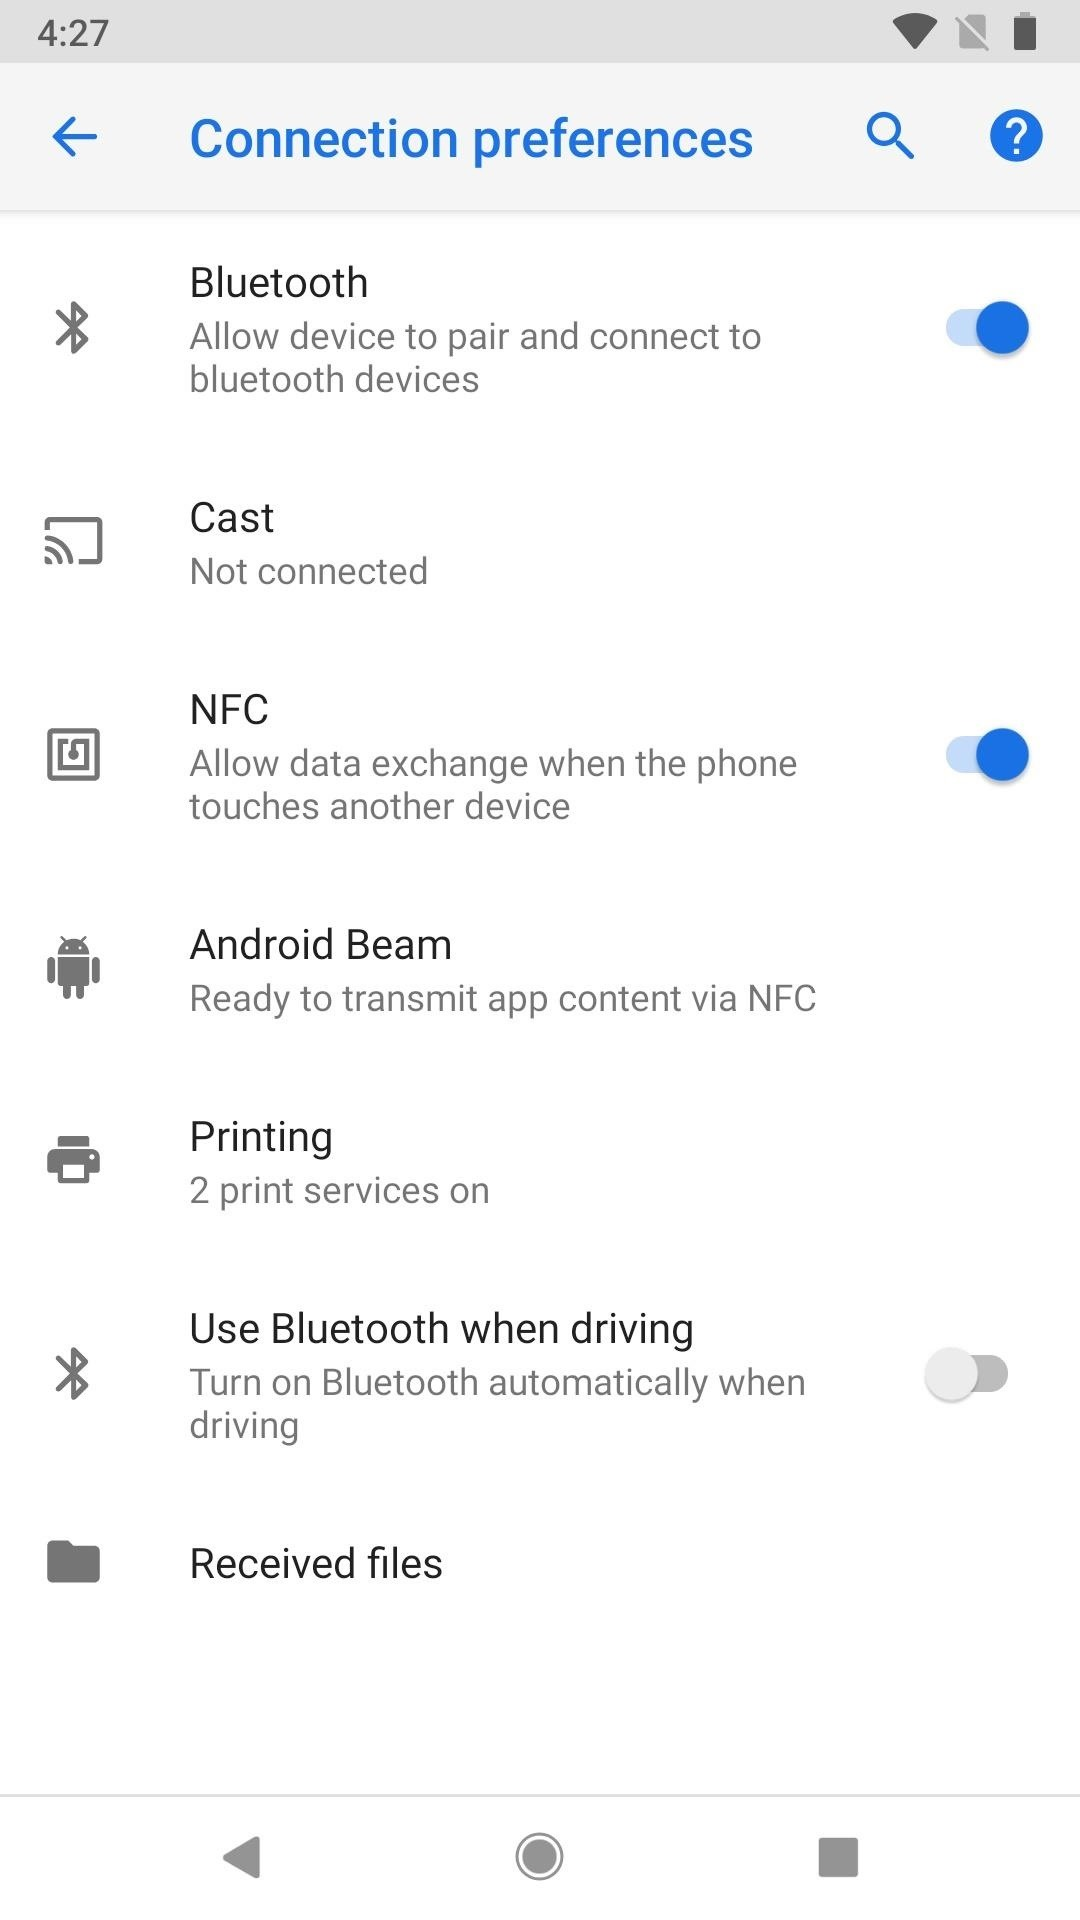 How to Unlock Android 9.0 Pie's New 'Feature Flags' Menu to Modify System Settings